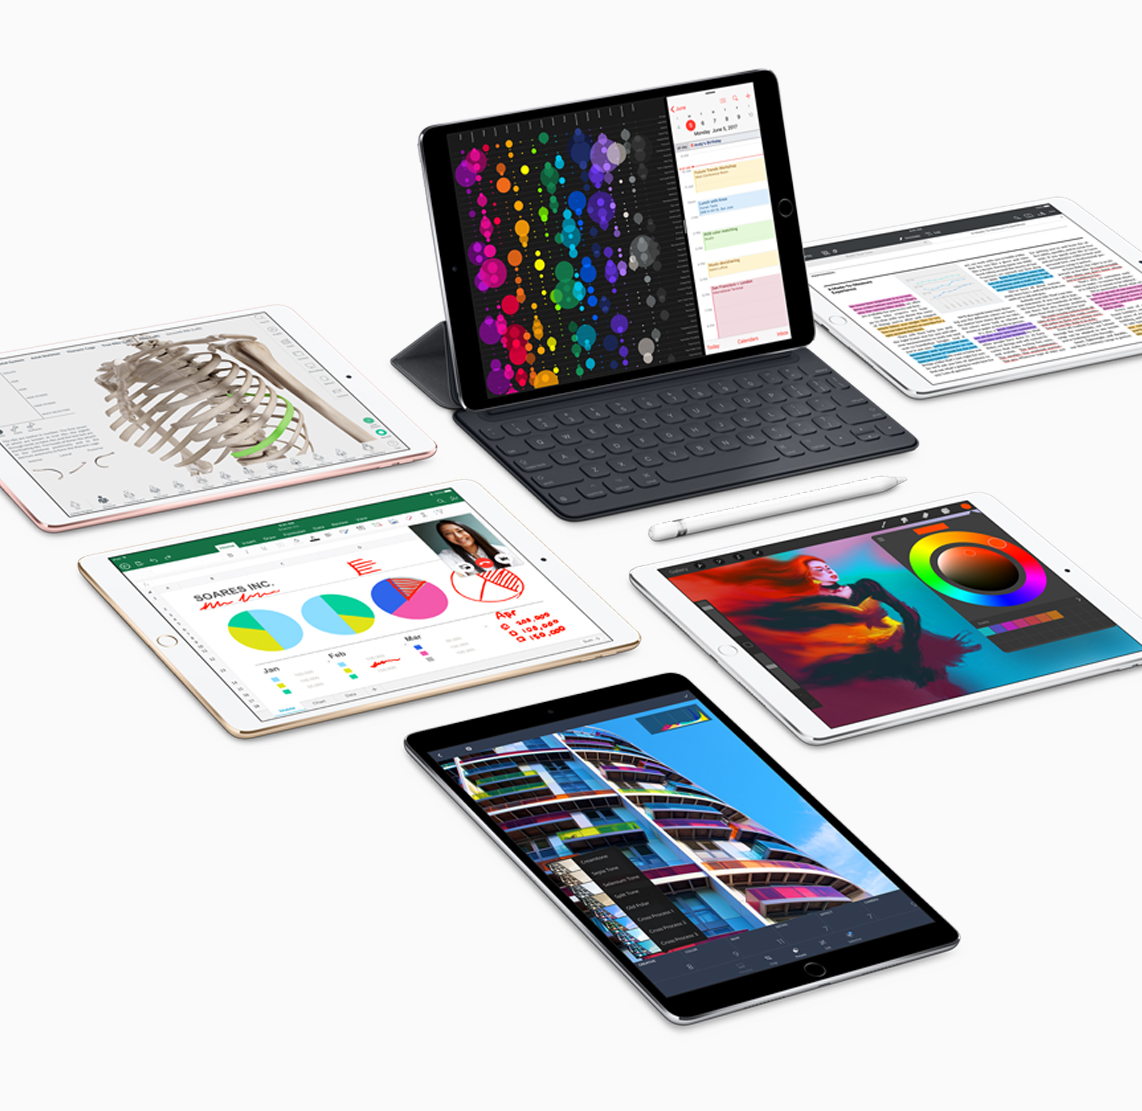 Latest iPad Pro Models Feature Ample Amount of RAM and Processing ...